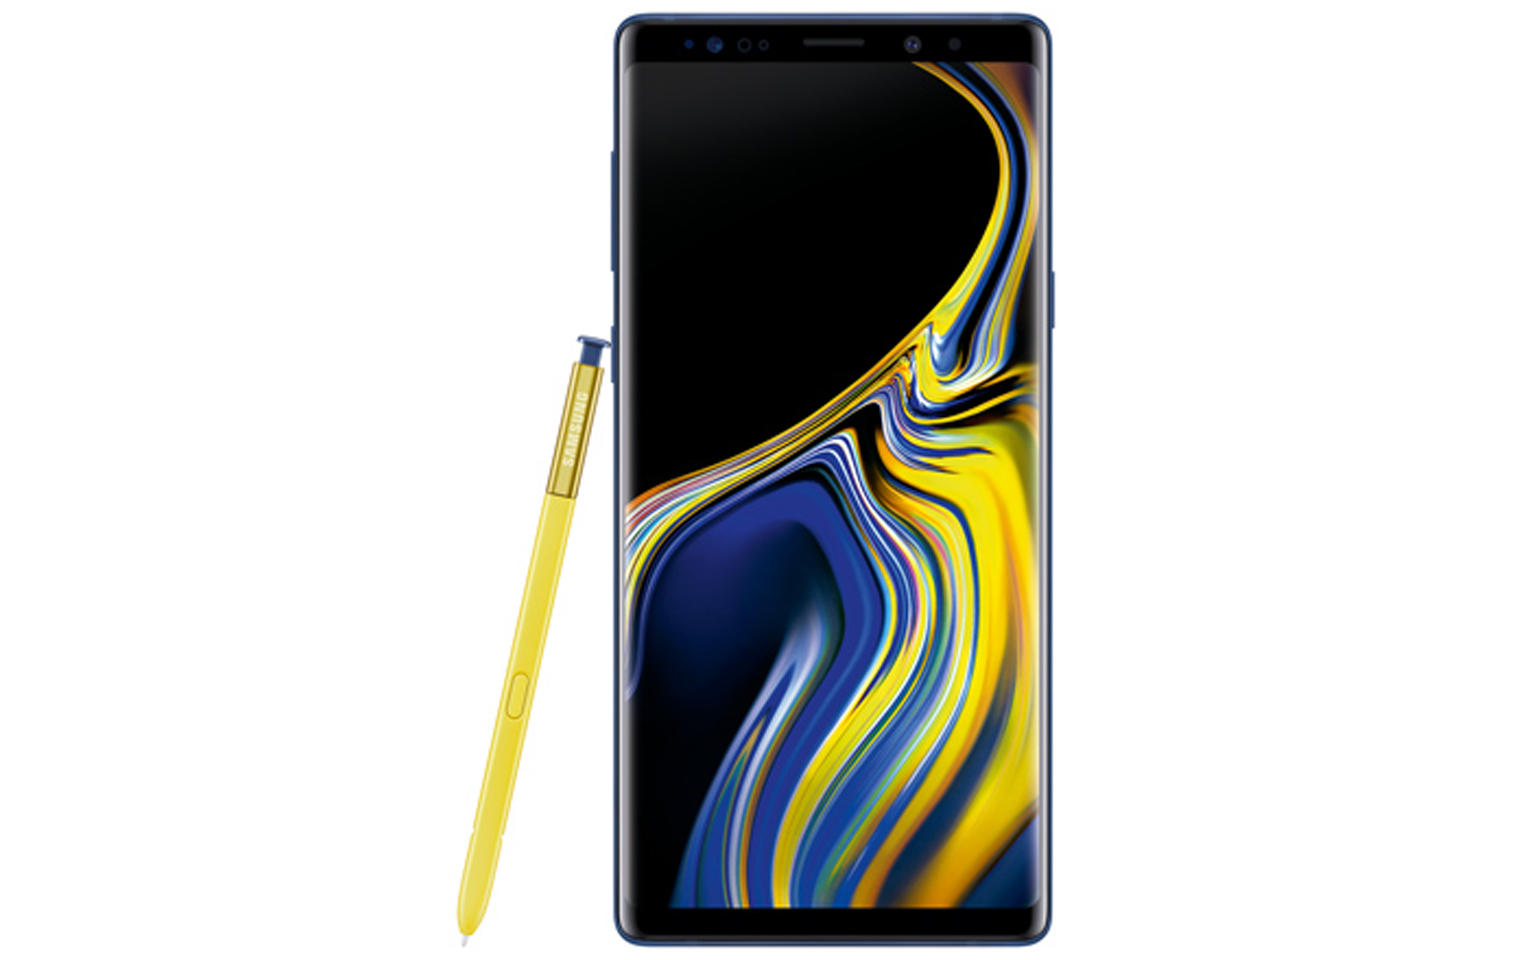 gewinnt ein galaxy note9 inkl zubeh r paket von samsung. Black Bedroom Furniture Sets. Home Design Ideas